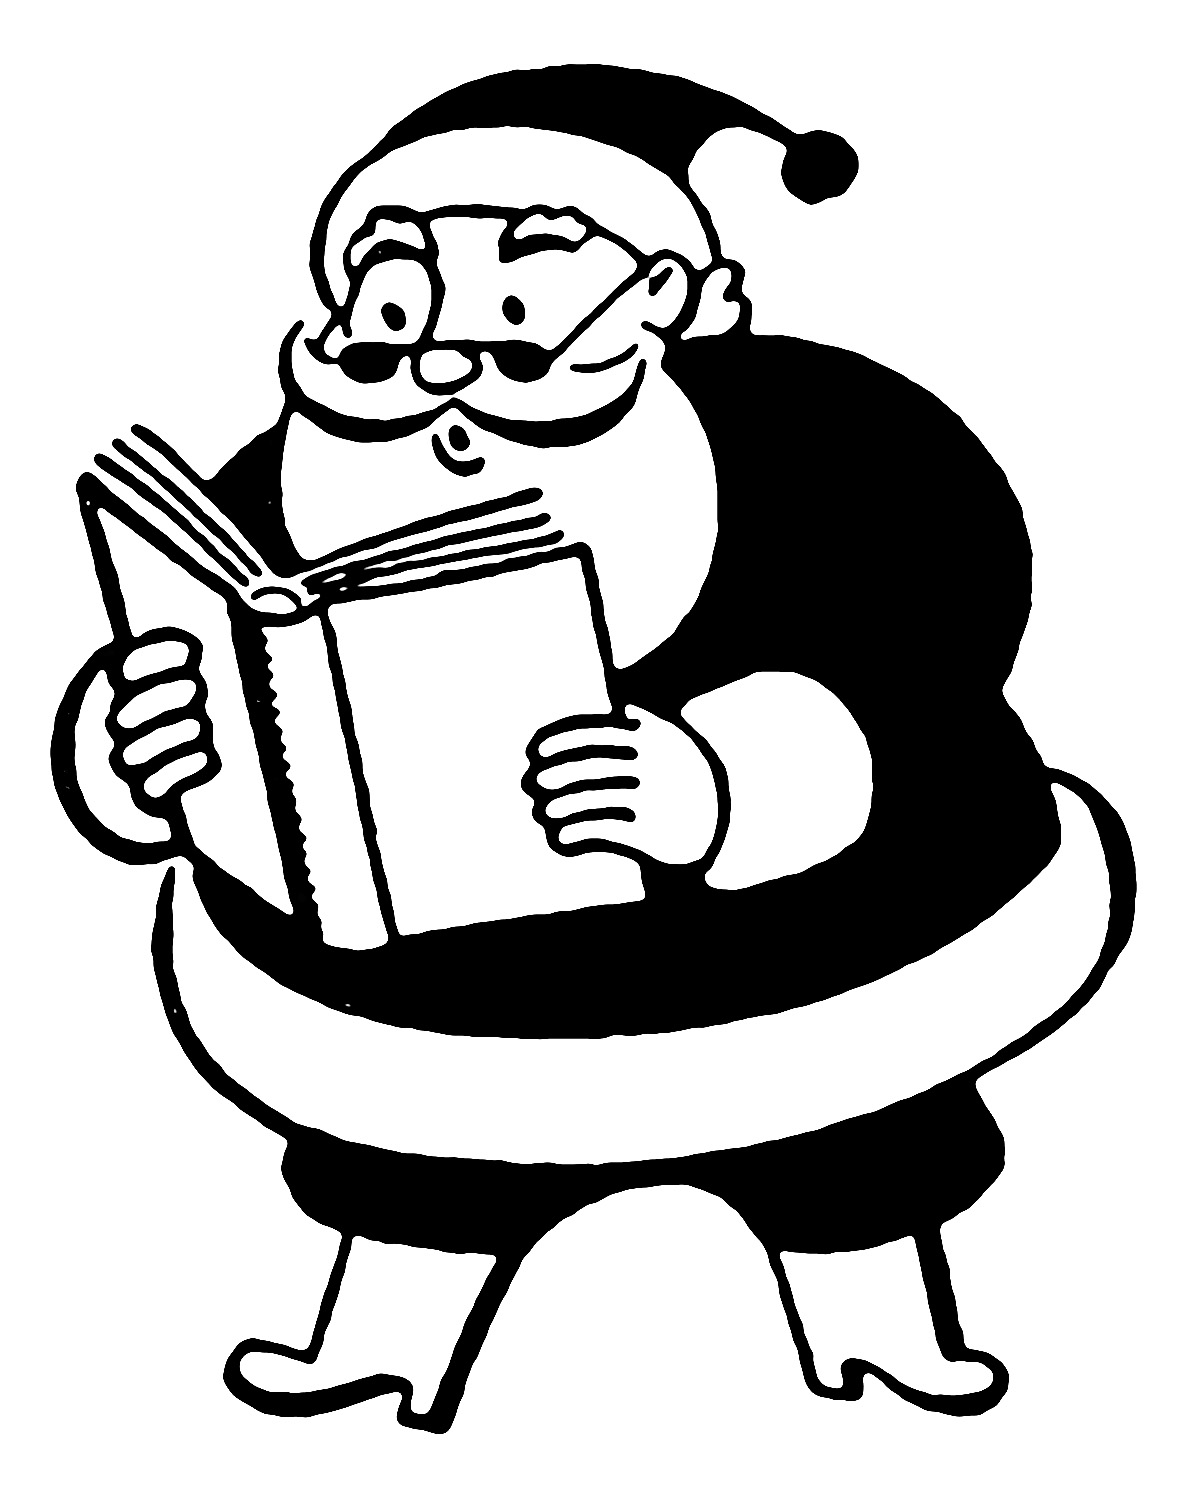 Christmas clipart books reading png free download 12 Cute Santa Clipart - Retro Style! - The Graphics Fairy png free download